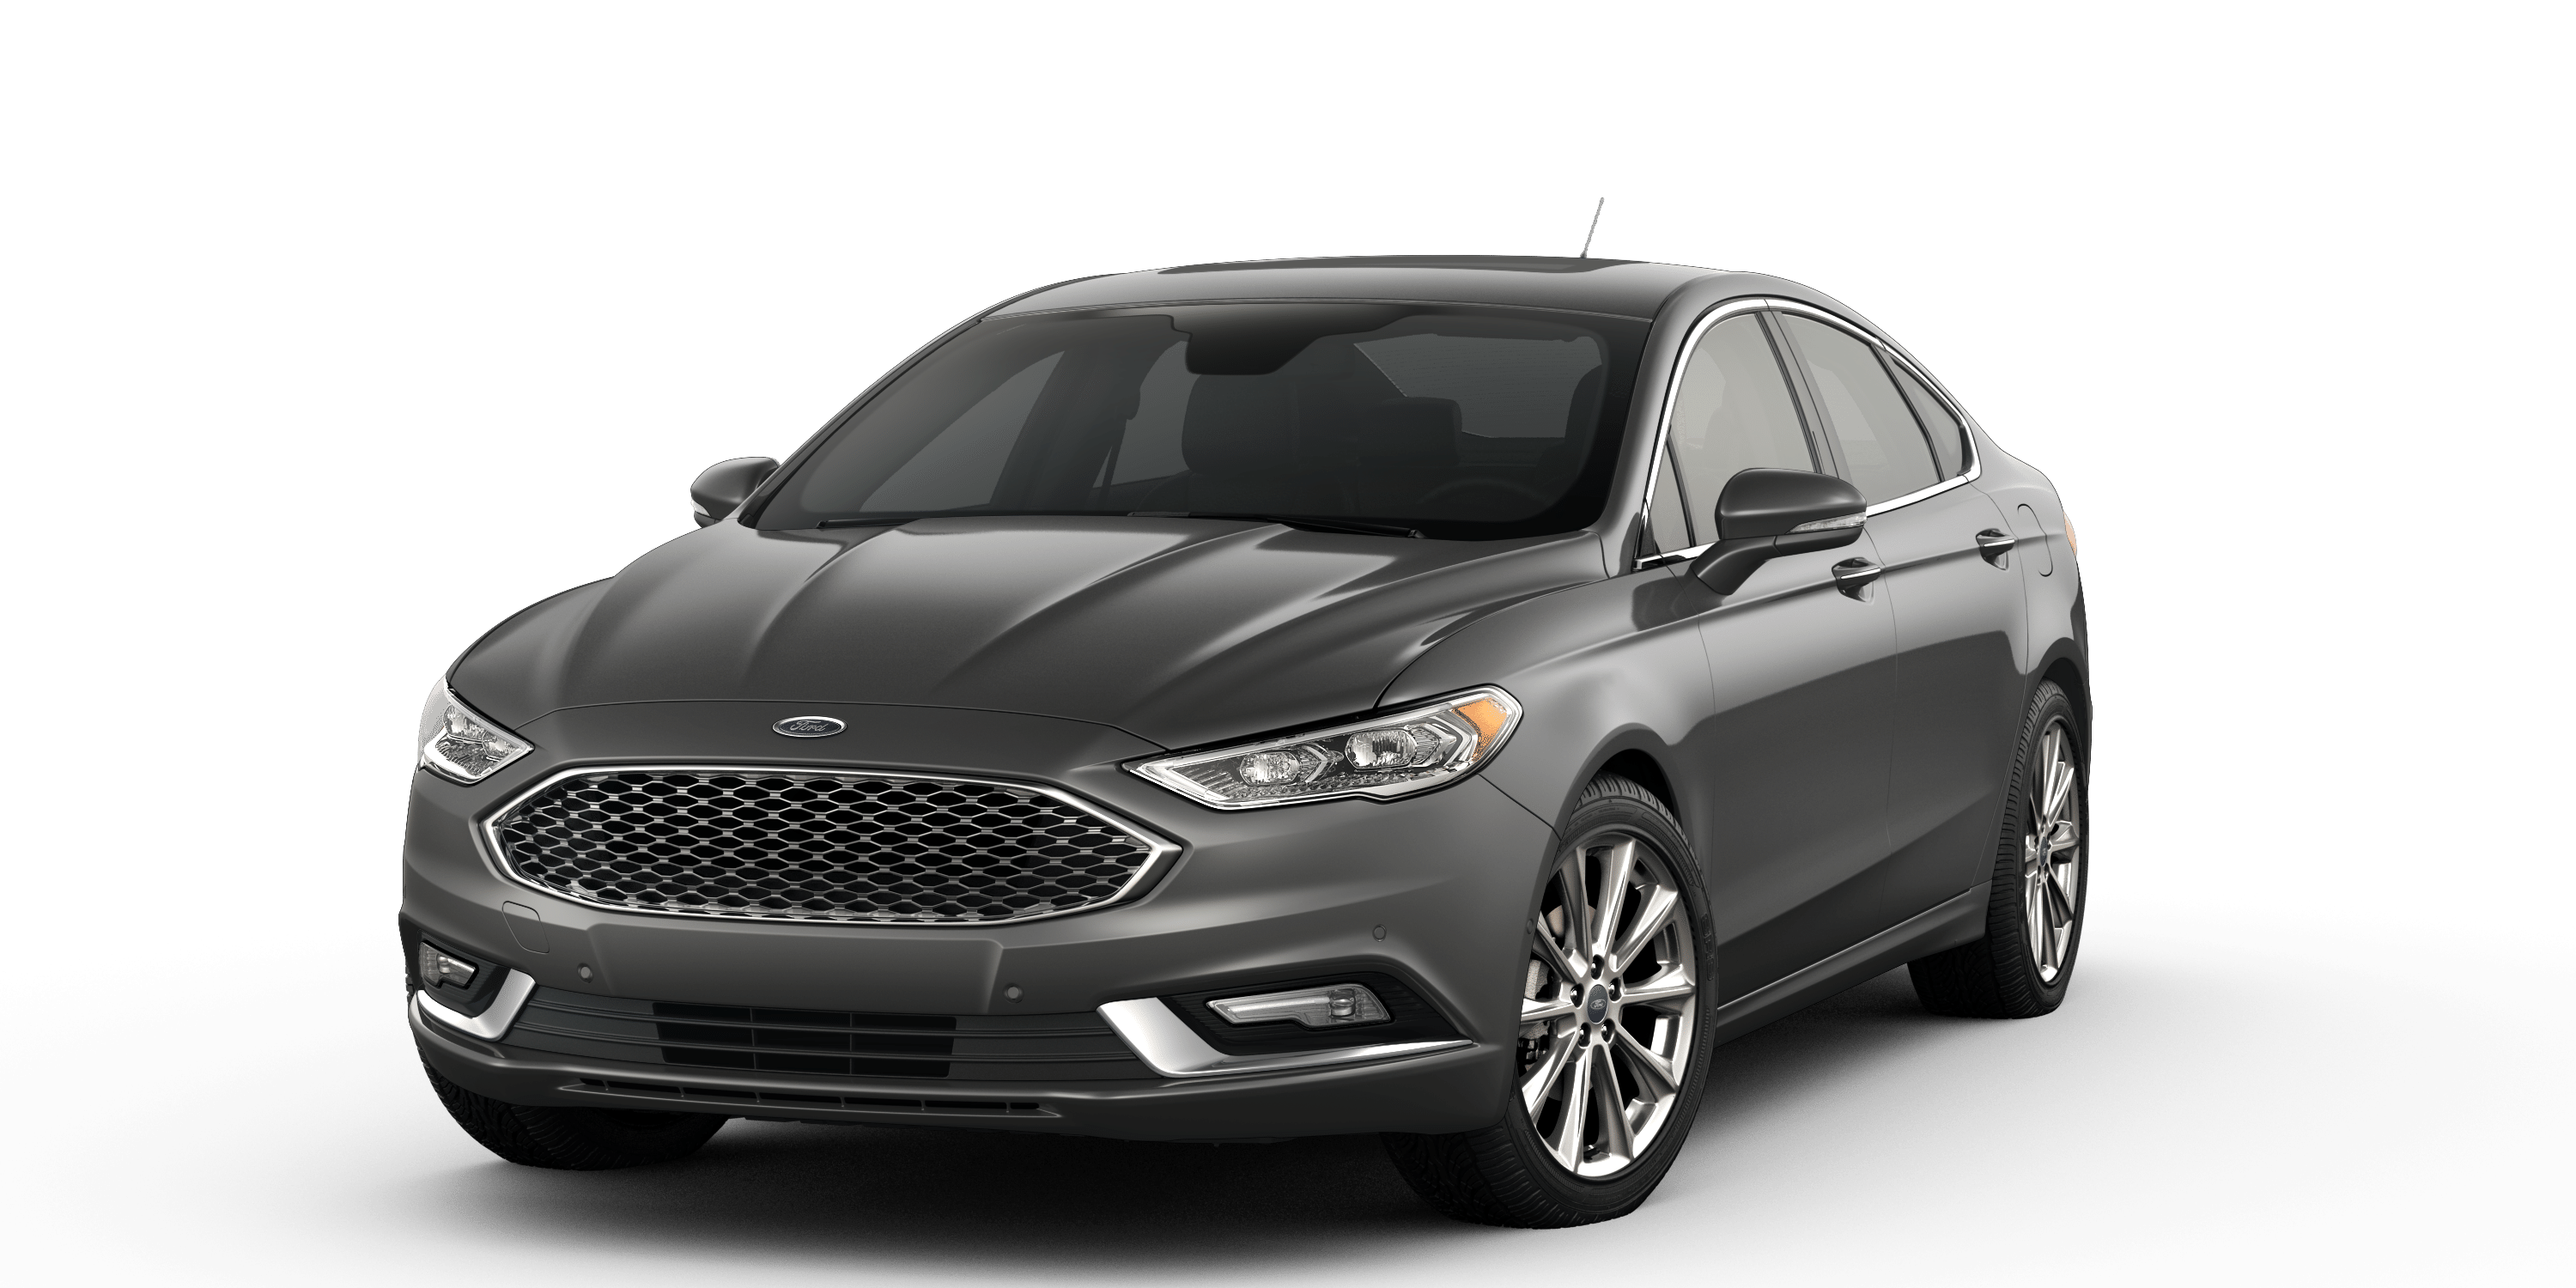 intl platinum ford fwd international specs prices aa price fusion overview